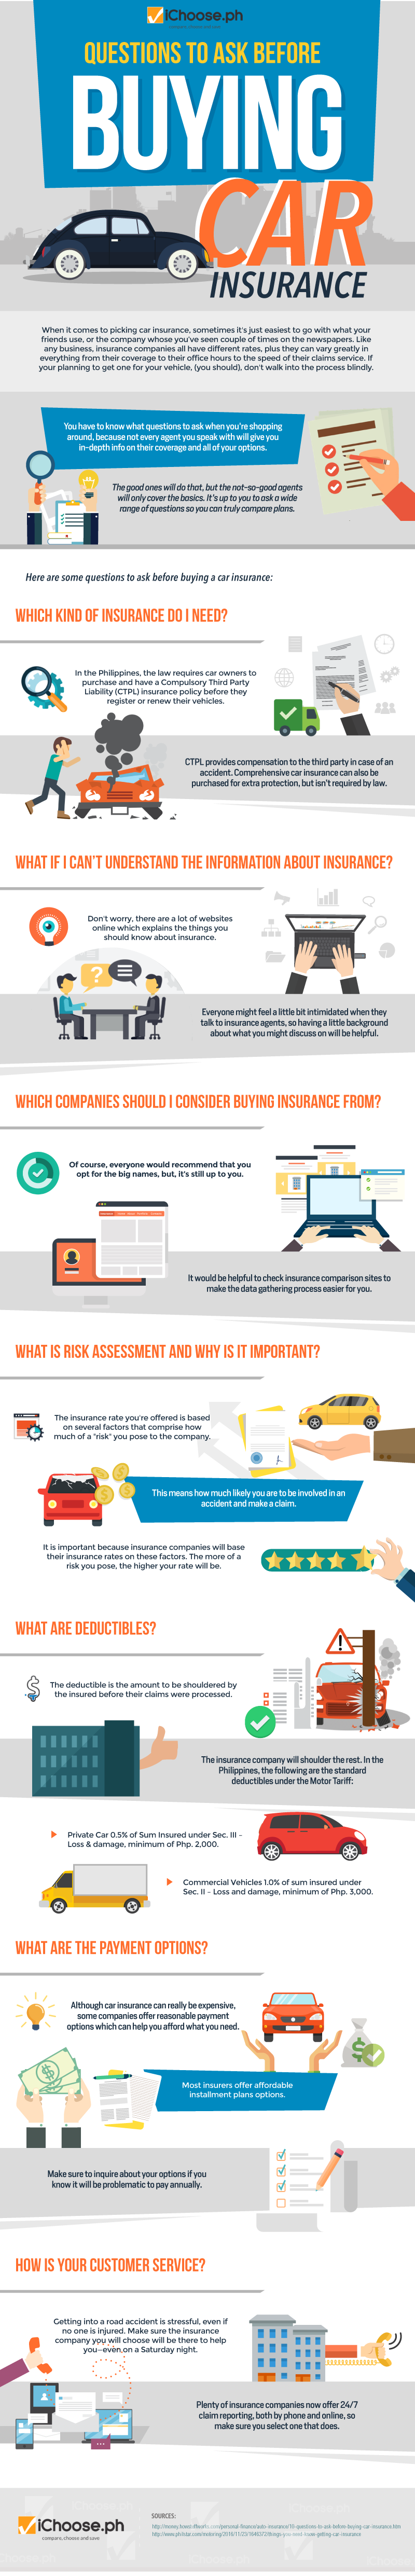 Questions to Ask Before Buying Car Insurance-01